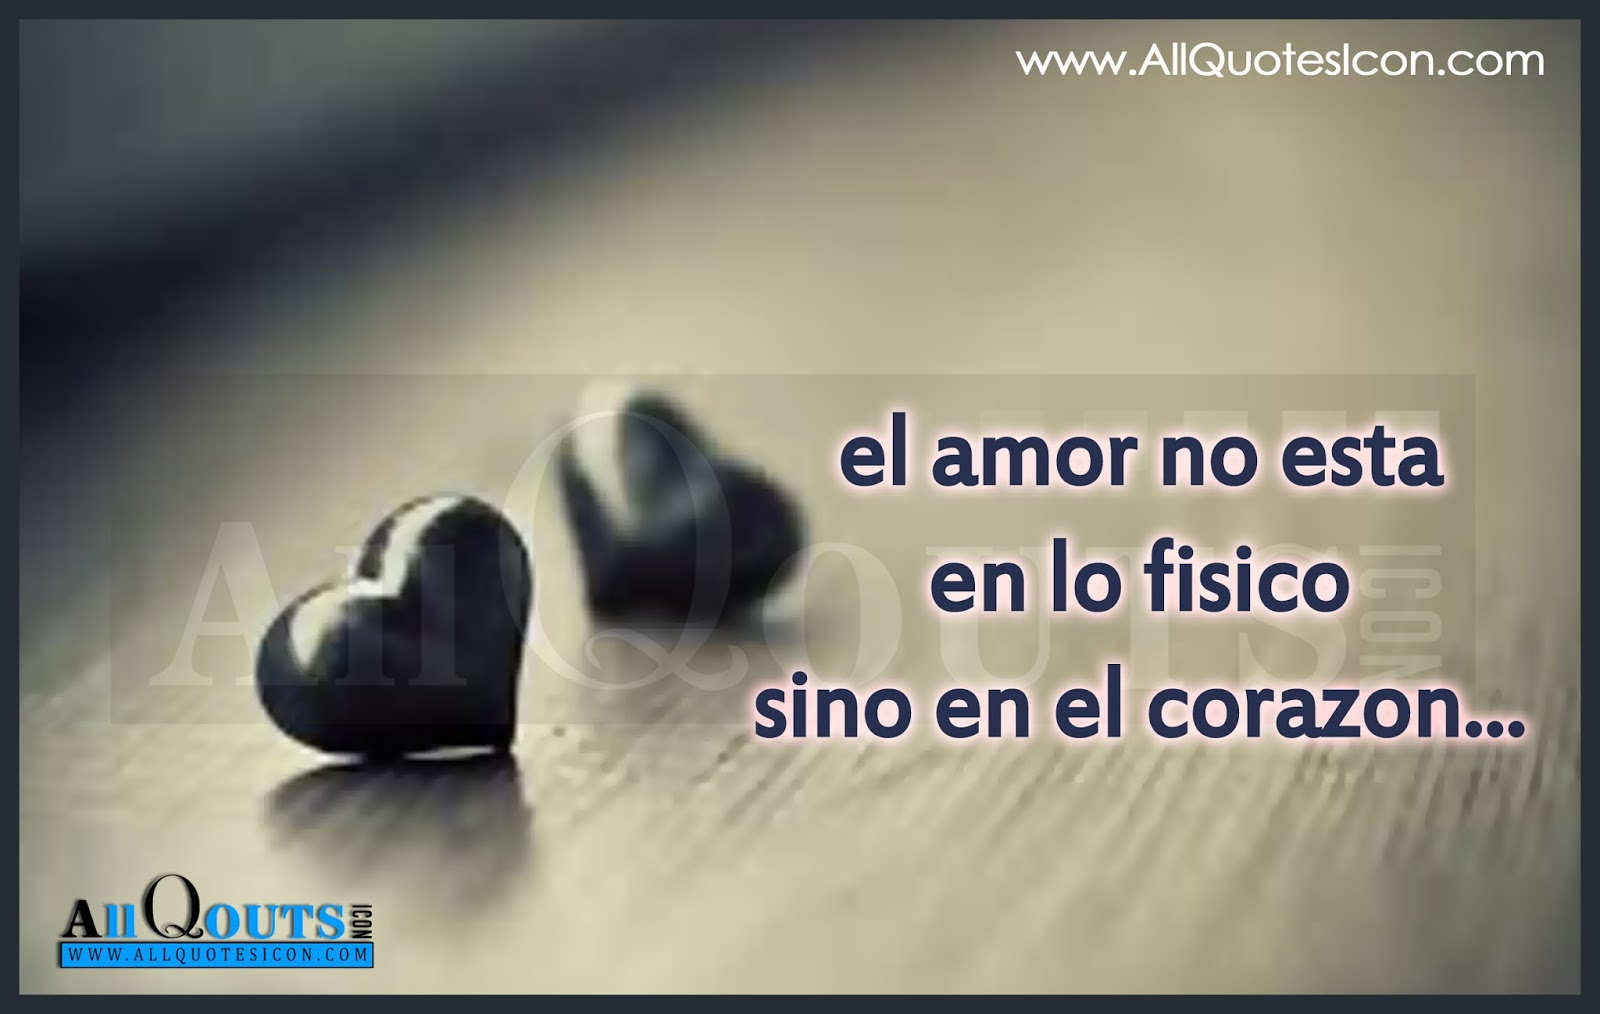 Spanish love quotes images motivation inspiration thoughts sayings